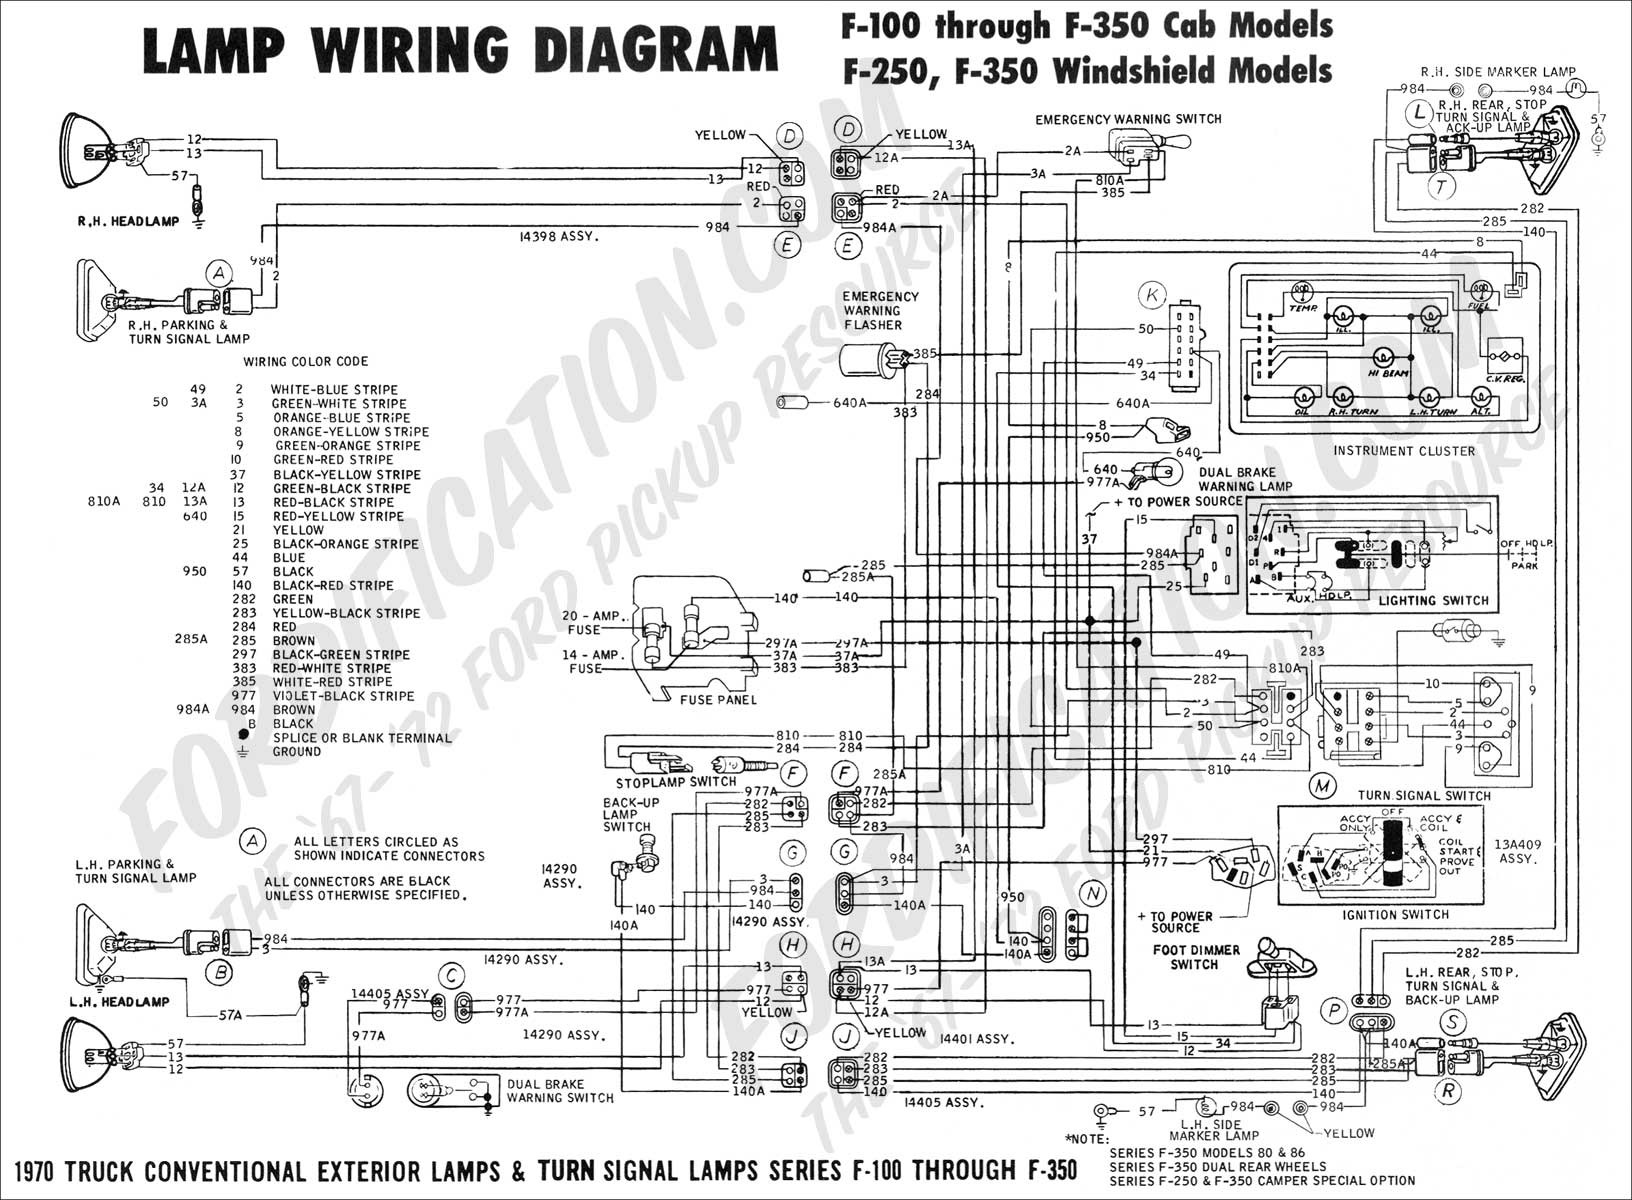 1996 Ford Taurus Wiring Diagram